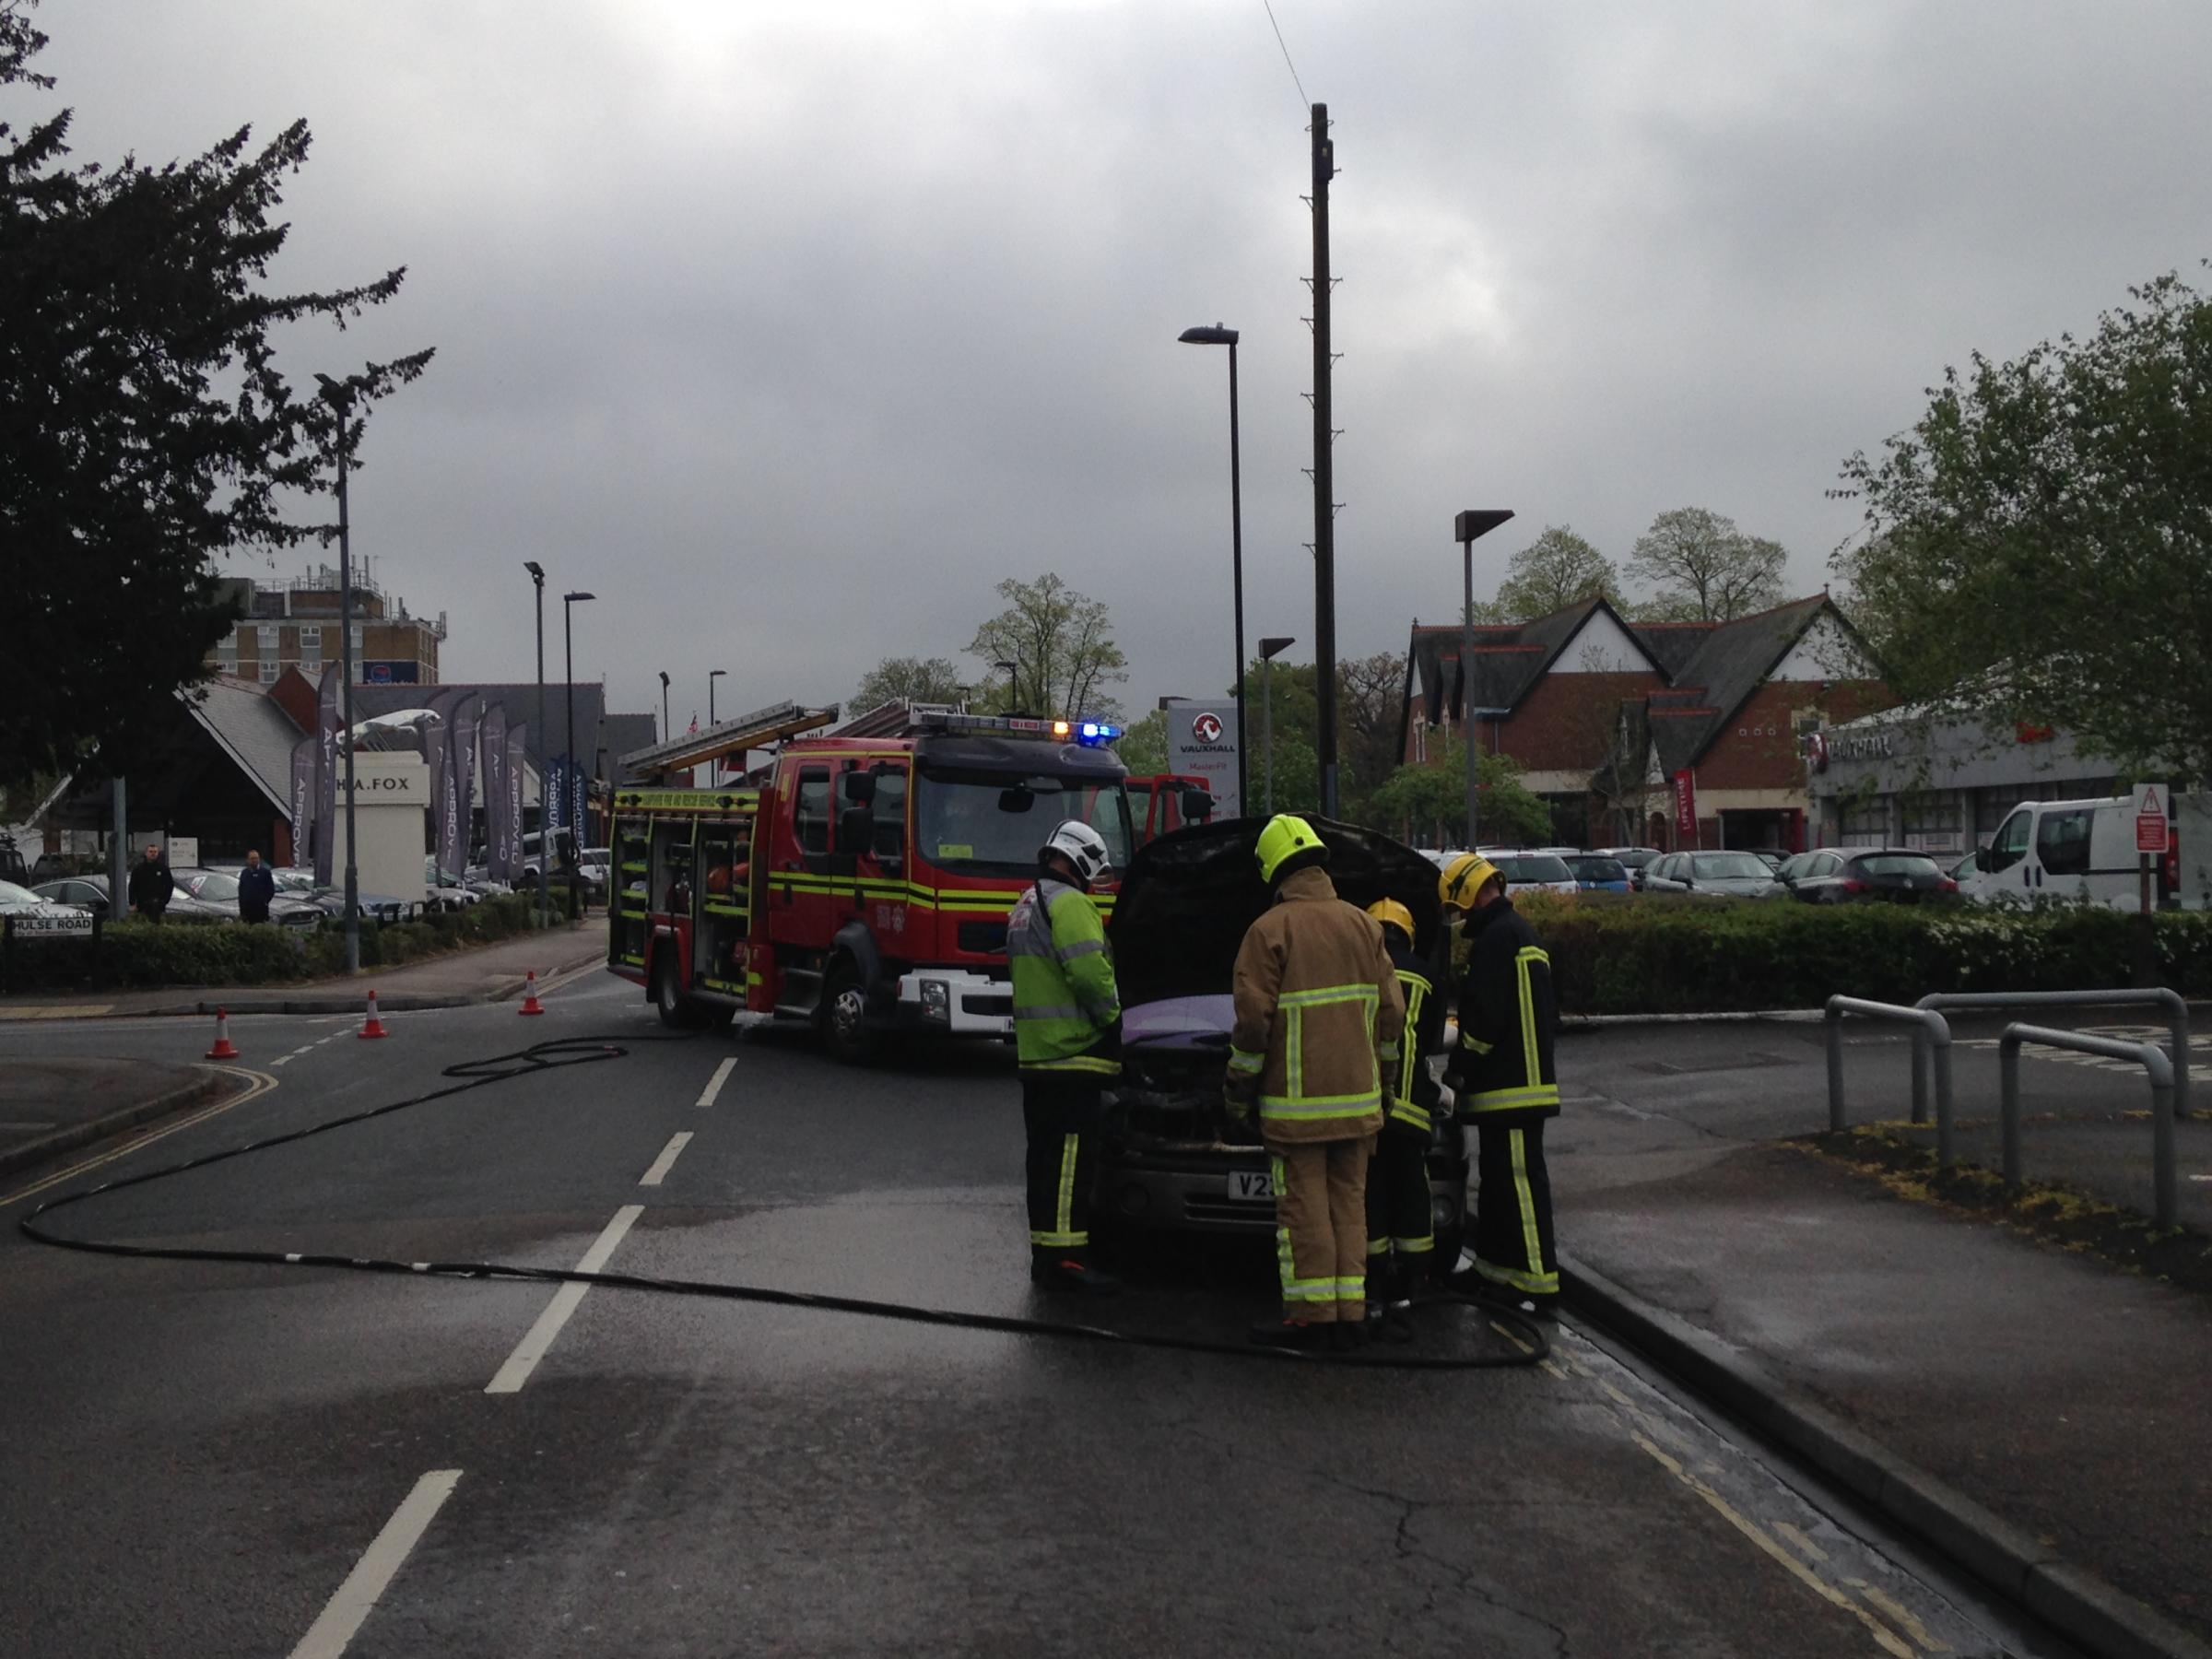 Firefighters at the scene of the car fire in Archers Road, Southampton. Photo by Josh Donaldson